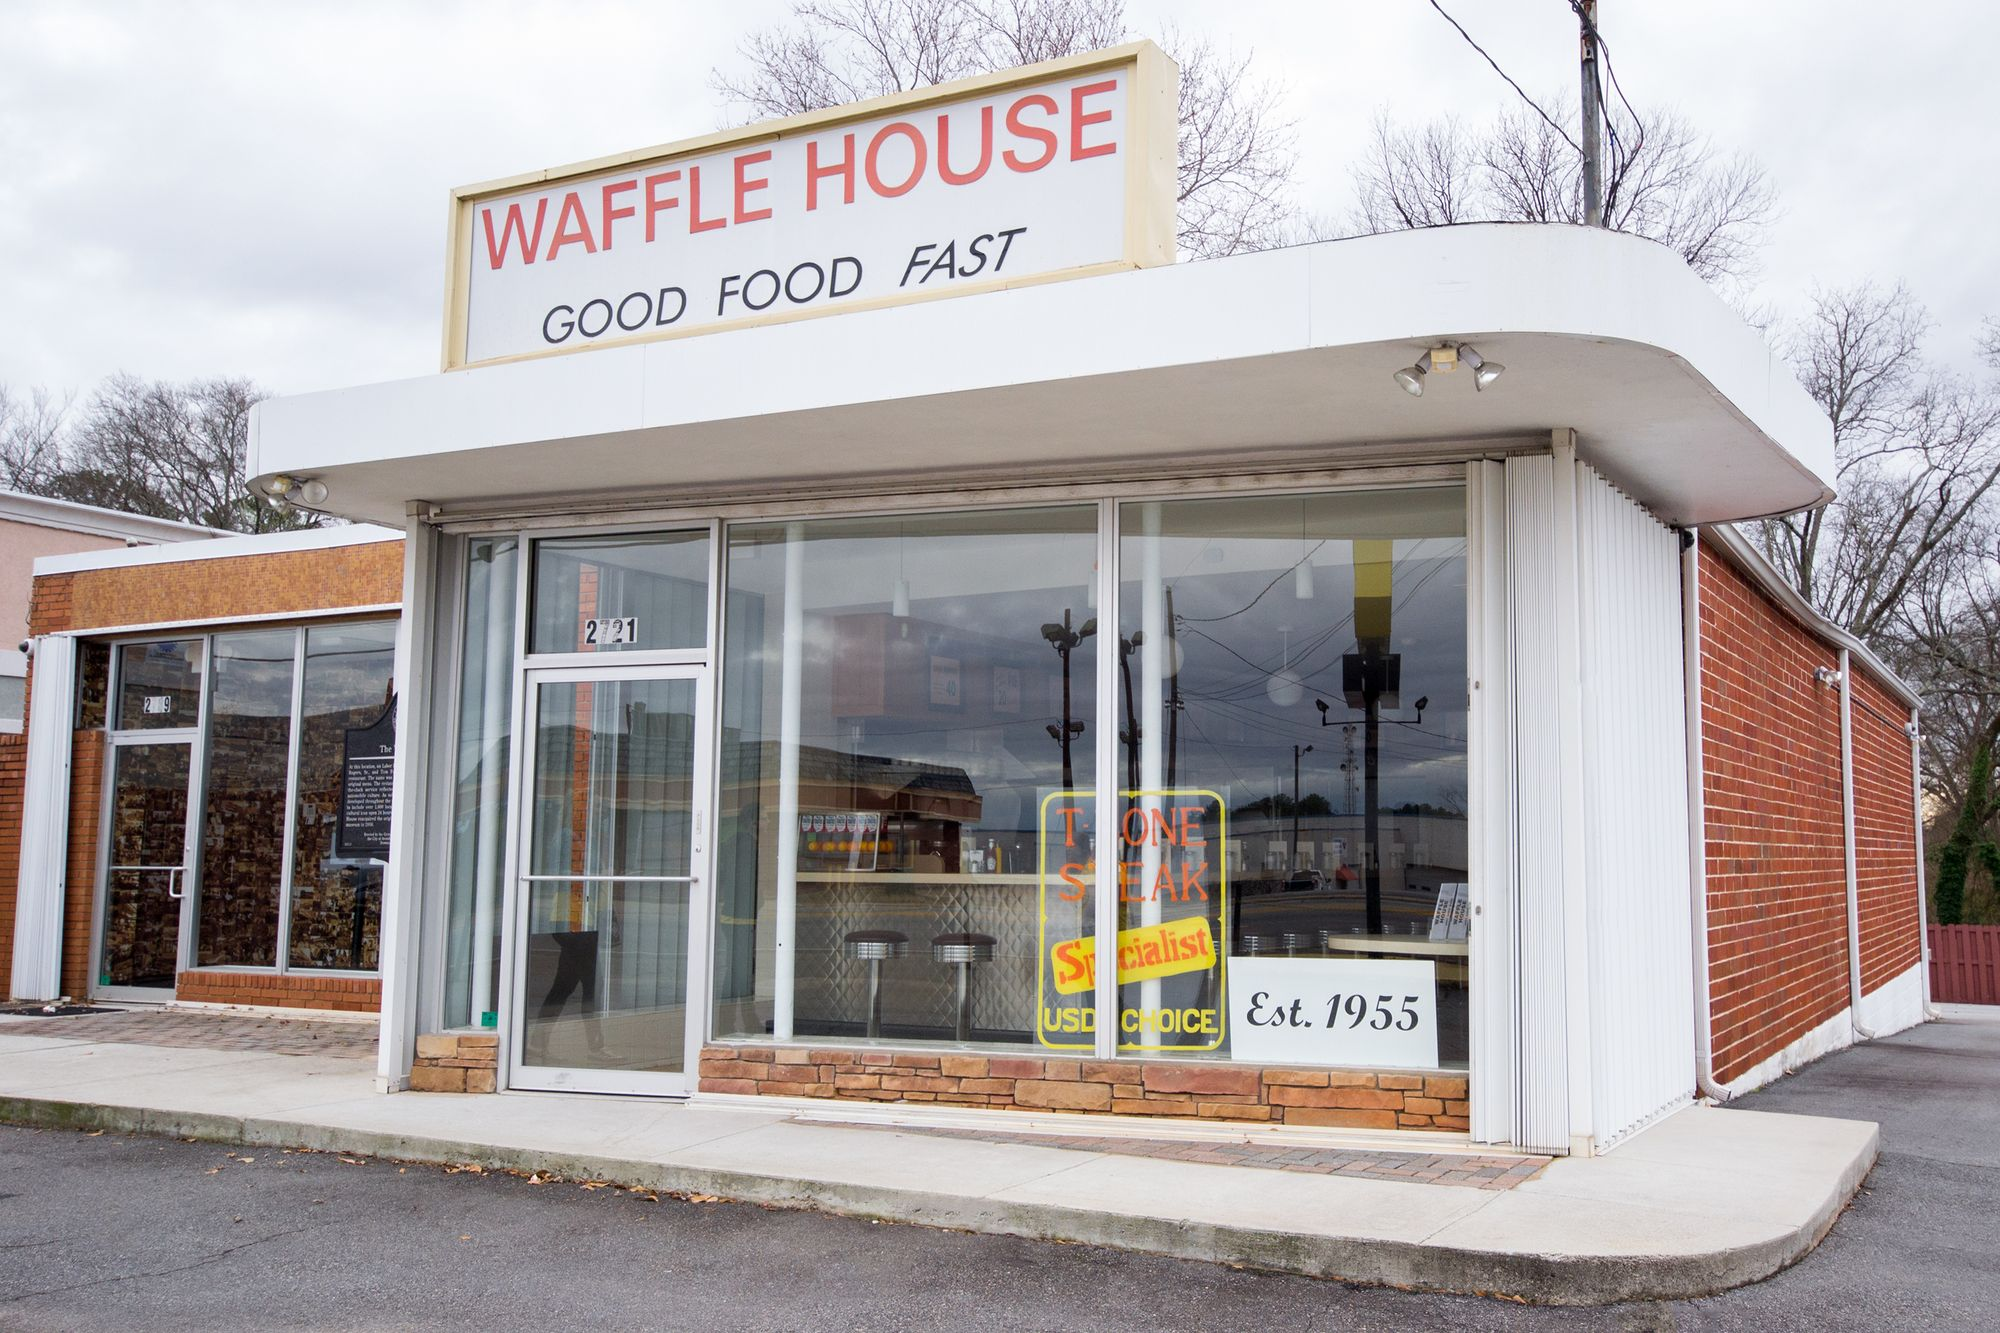 The exterior view of the Waffle House Museum.